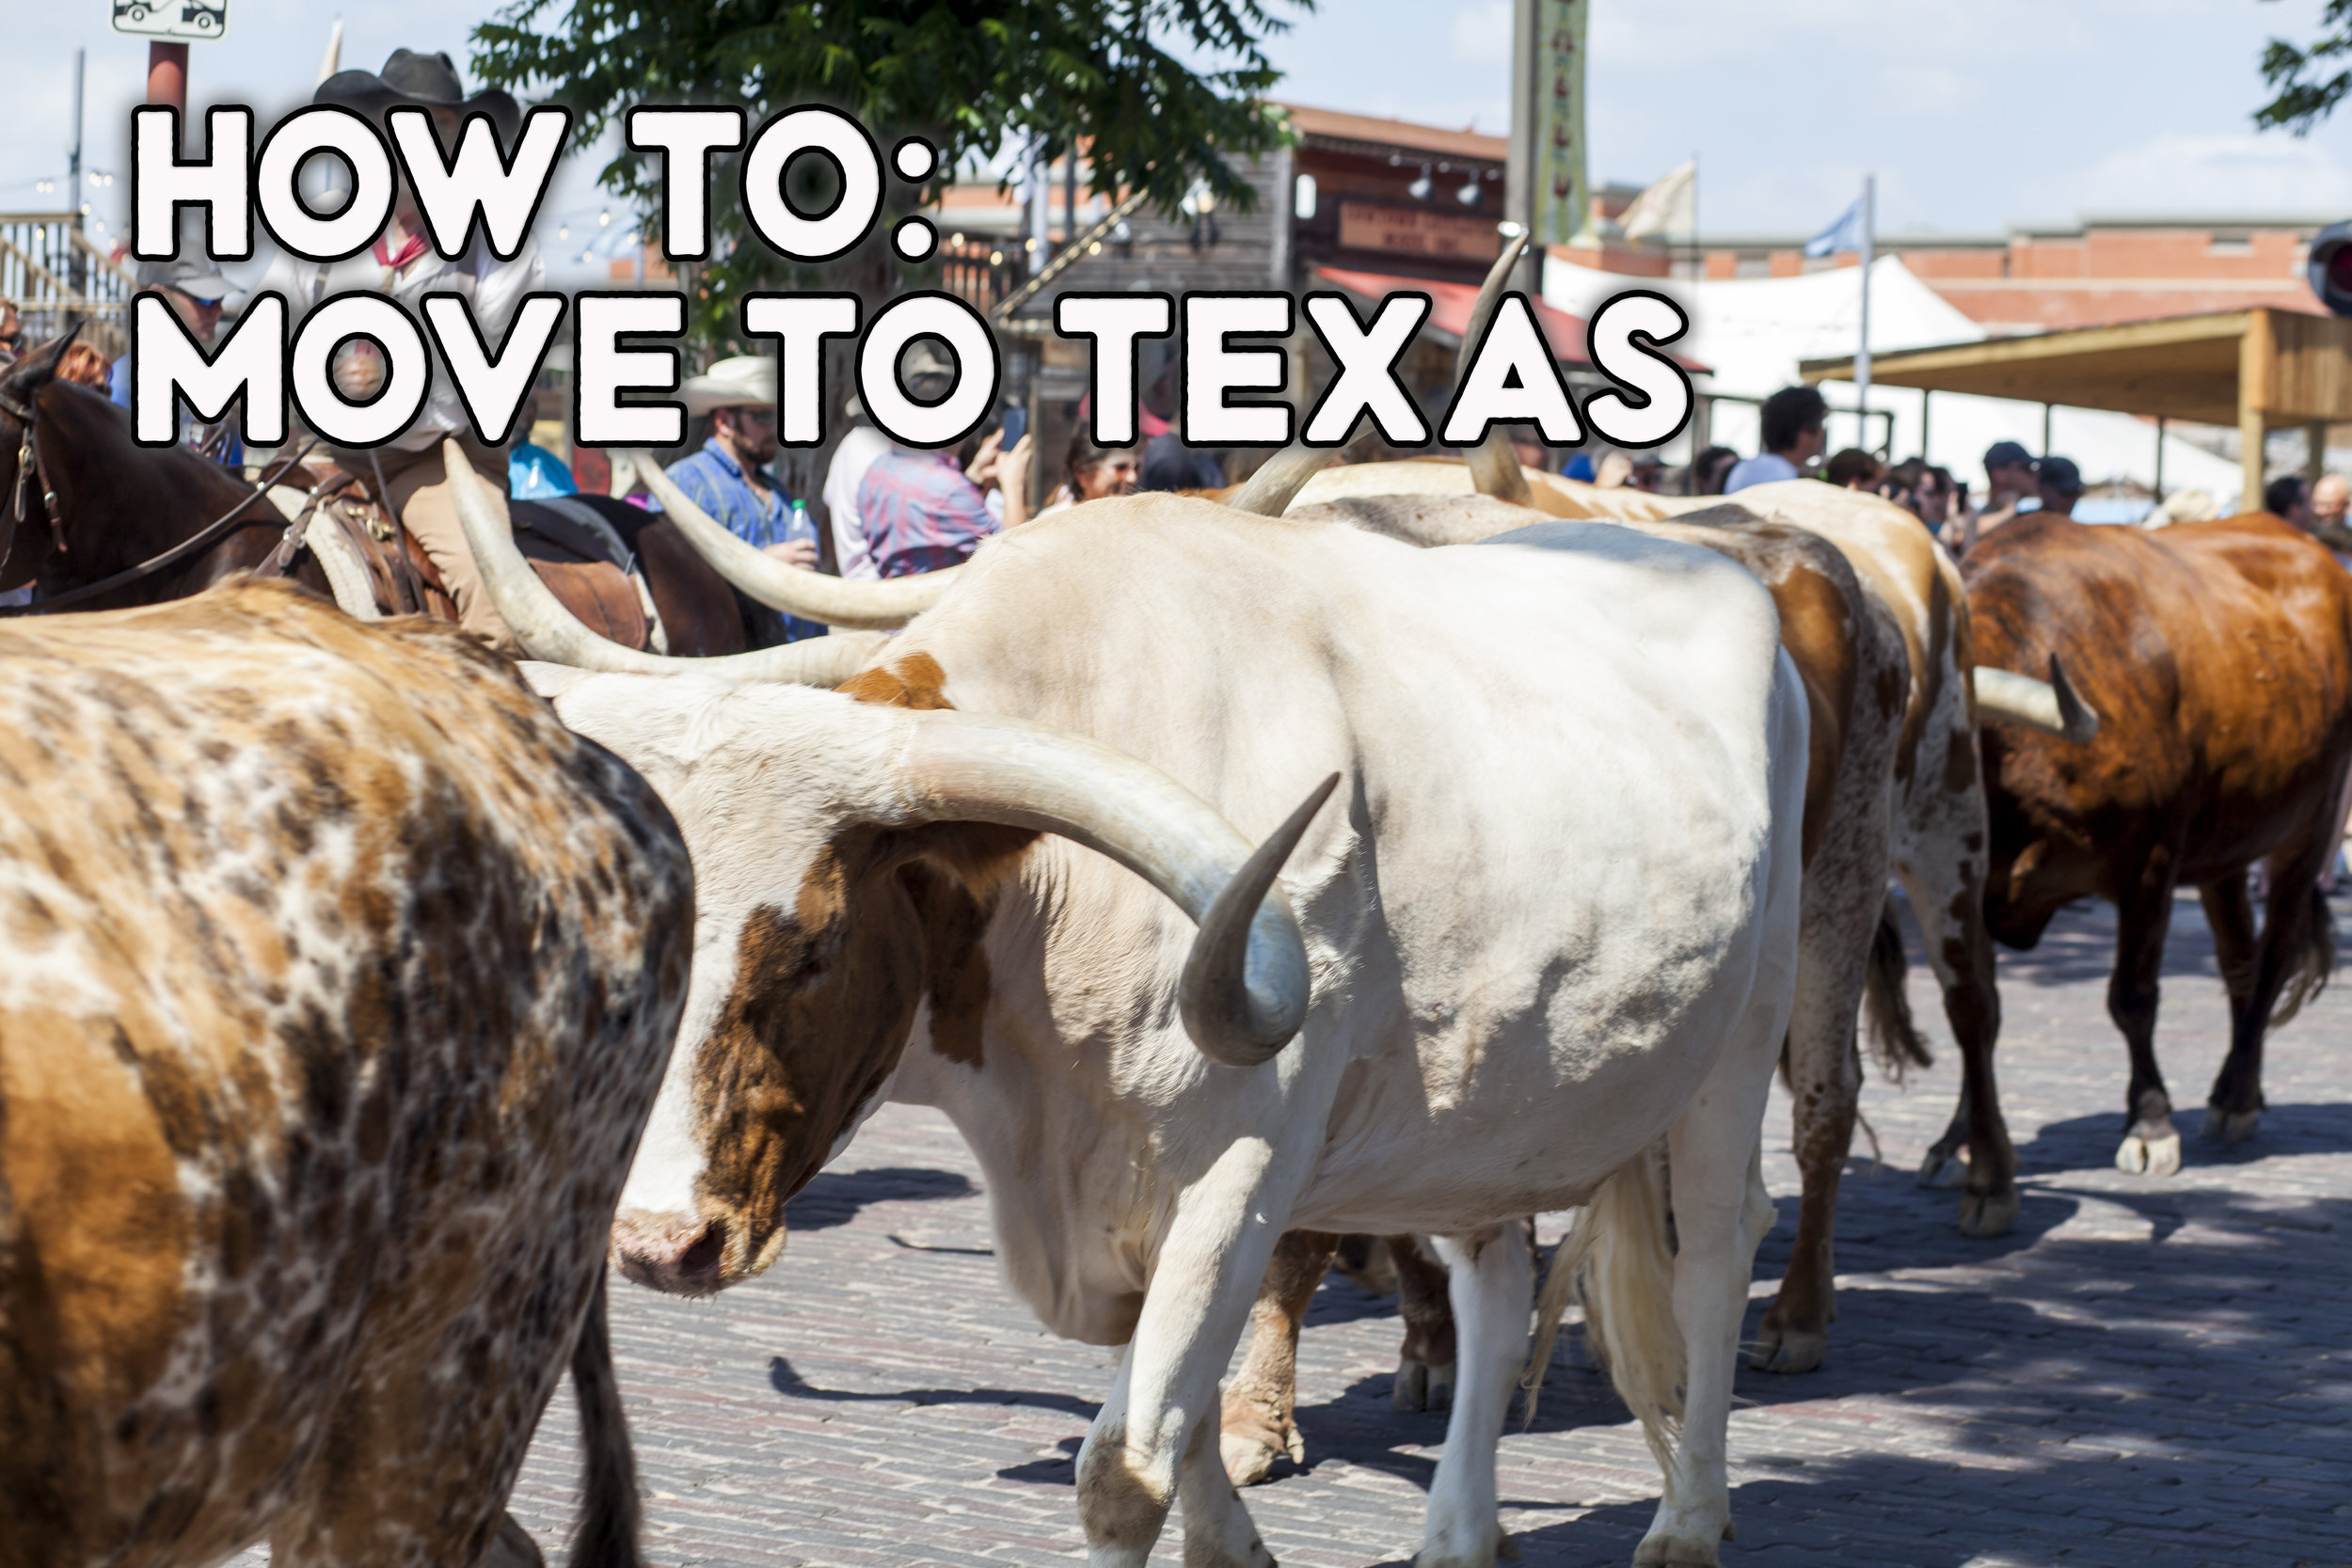 how to move to texas.jpg